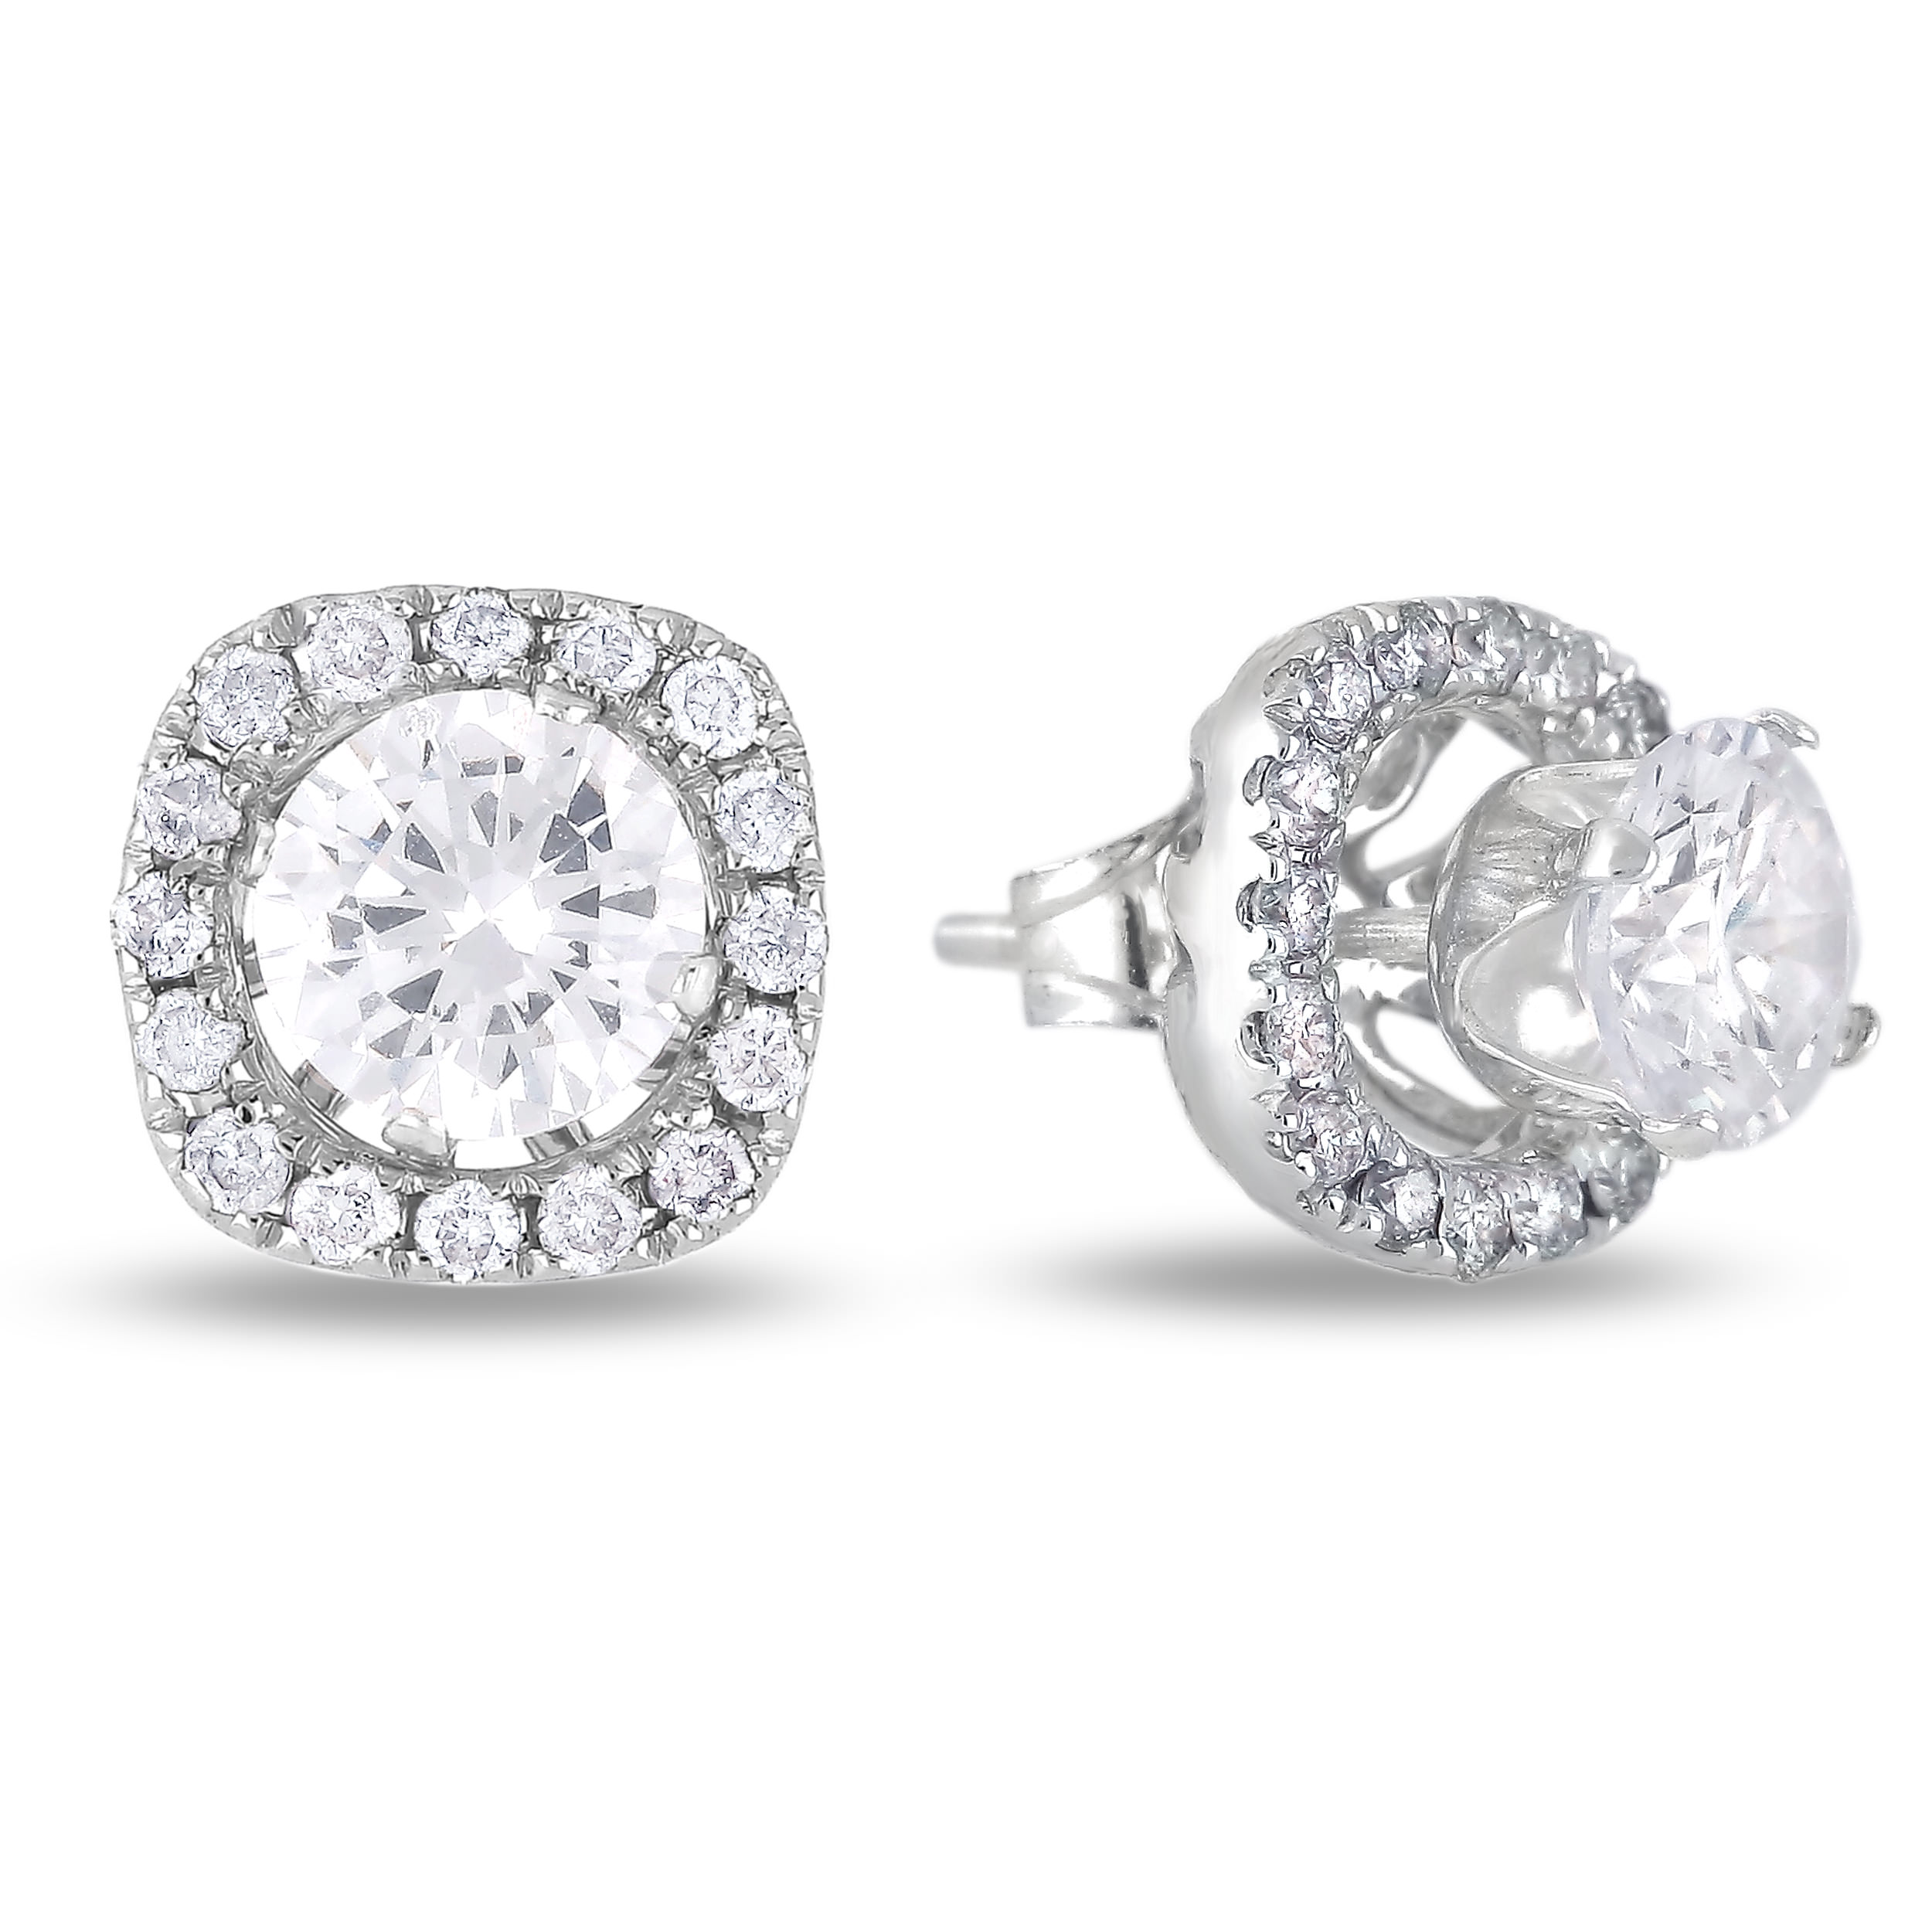 Diamond Stud Earrings SGE277 (Earrings)